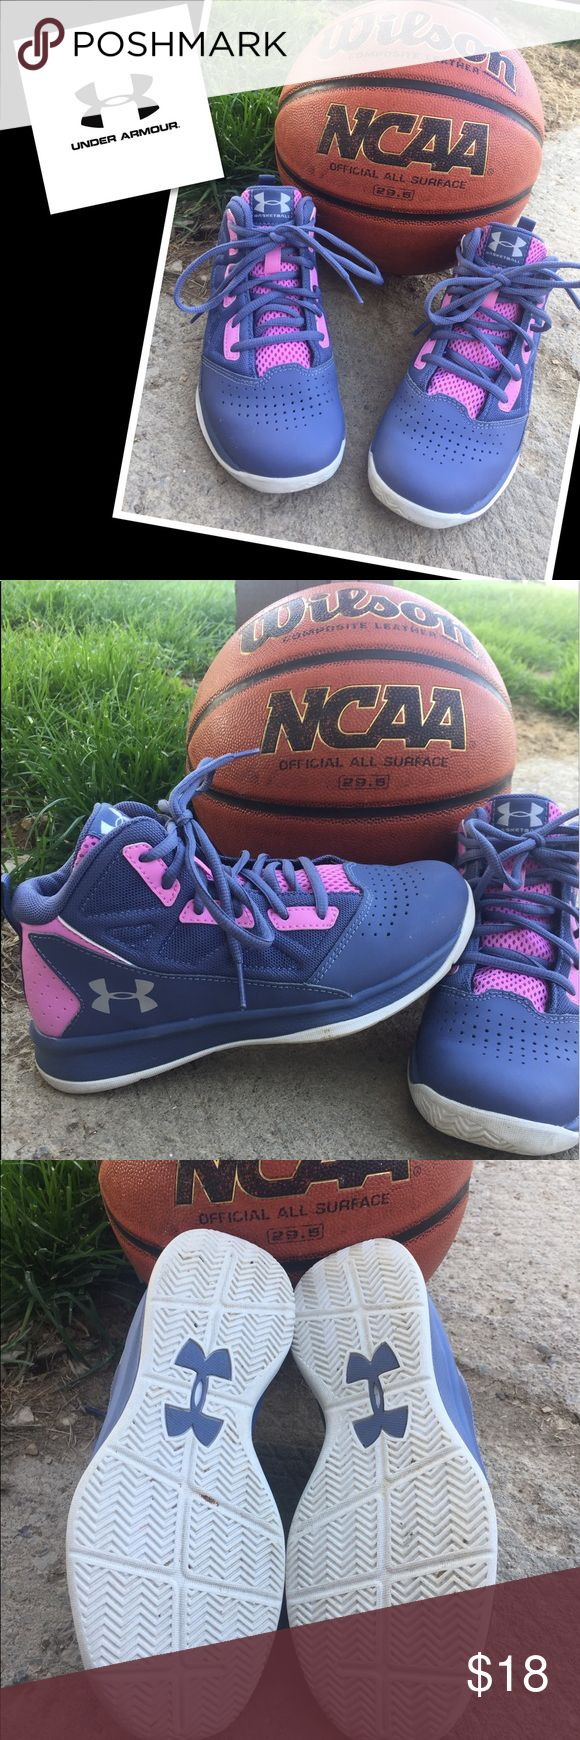 Under Armour Basketball Sneakers Girl's pink & purple high top sneakers for basketball. Only worn for one season and only used for basketball.  Girl's size 2Y Under Armour Shoes Sneakers